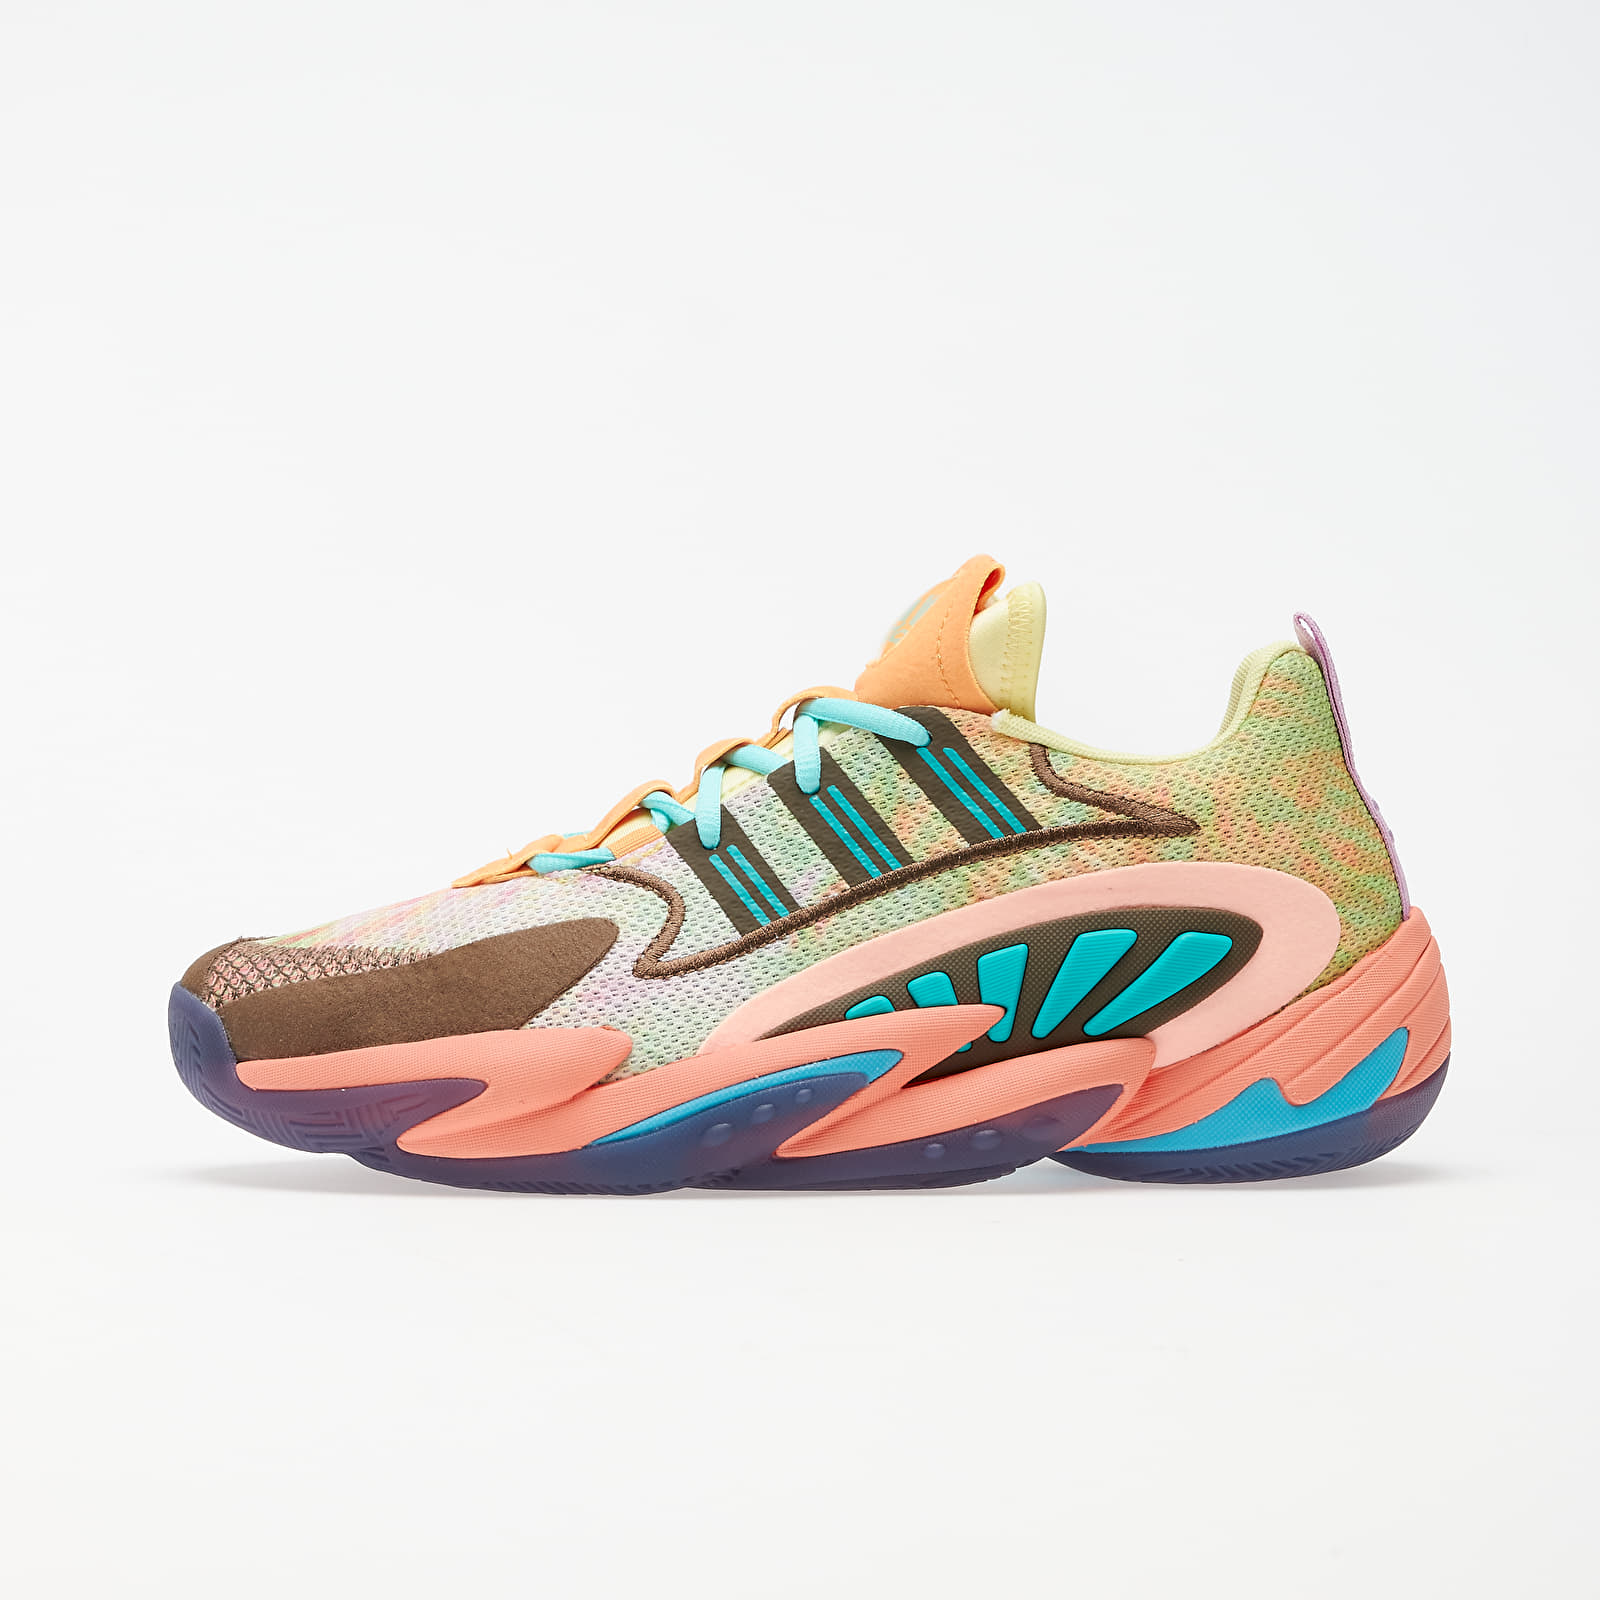 Men's shoes adidas x Pharrell Williams Crazy BYW 2.0 Yellow Tint/ Chalk Coral/ Trace Purple